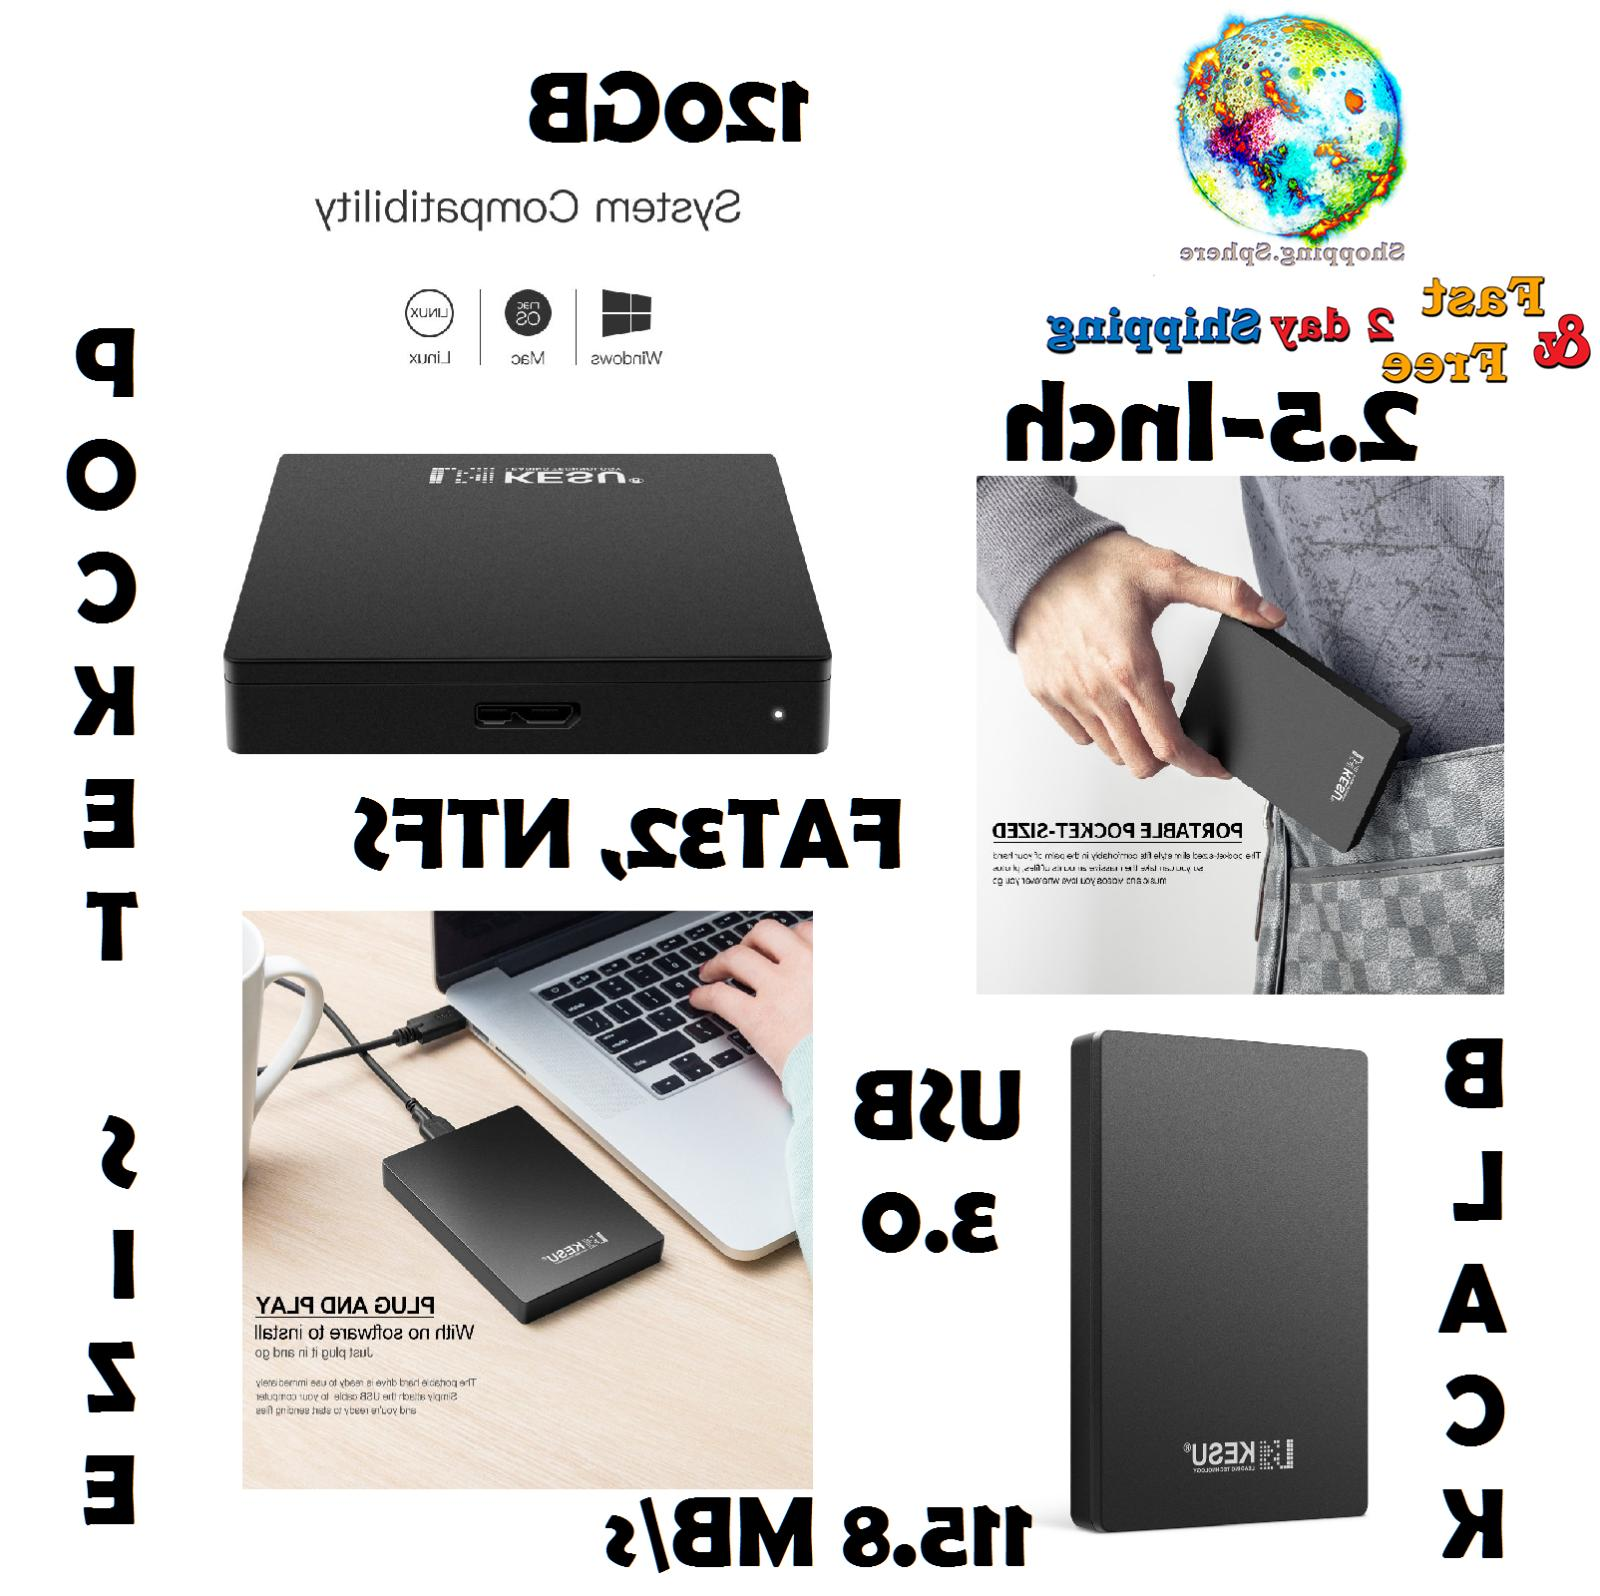 External Portable Hard Drive Usb 3.0 Data Storage Computer Accessories Laptop